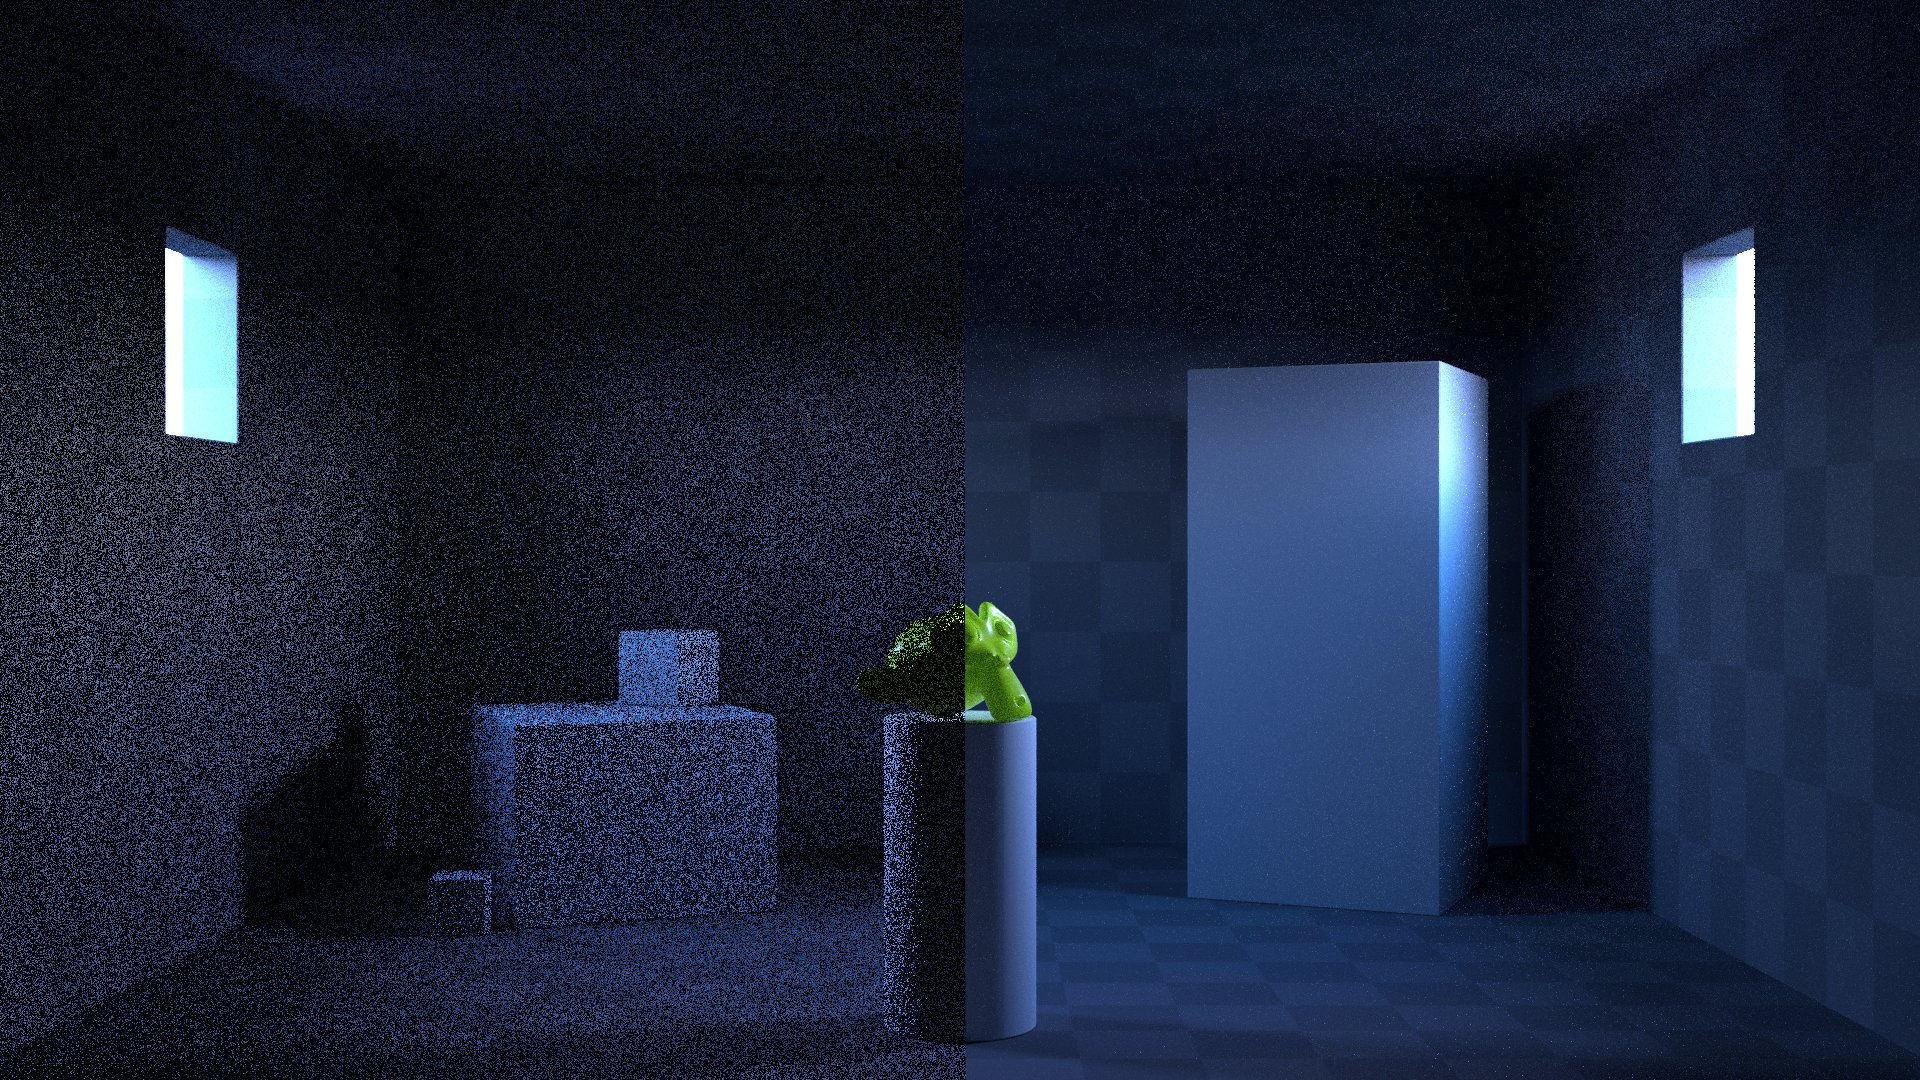 Without portals vs. with portals (almost identical render time).